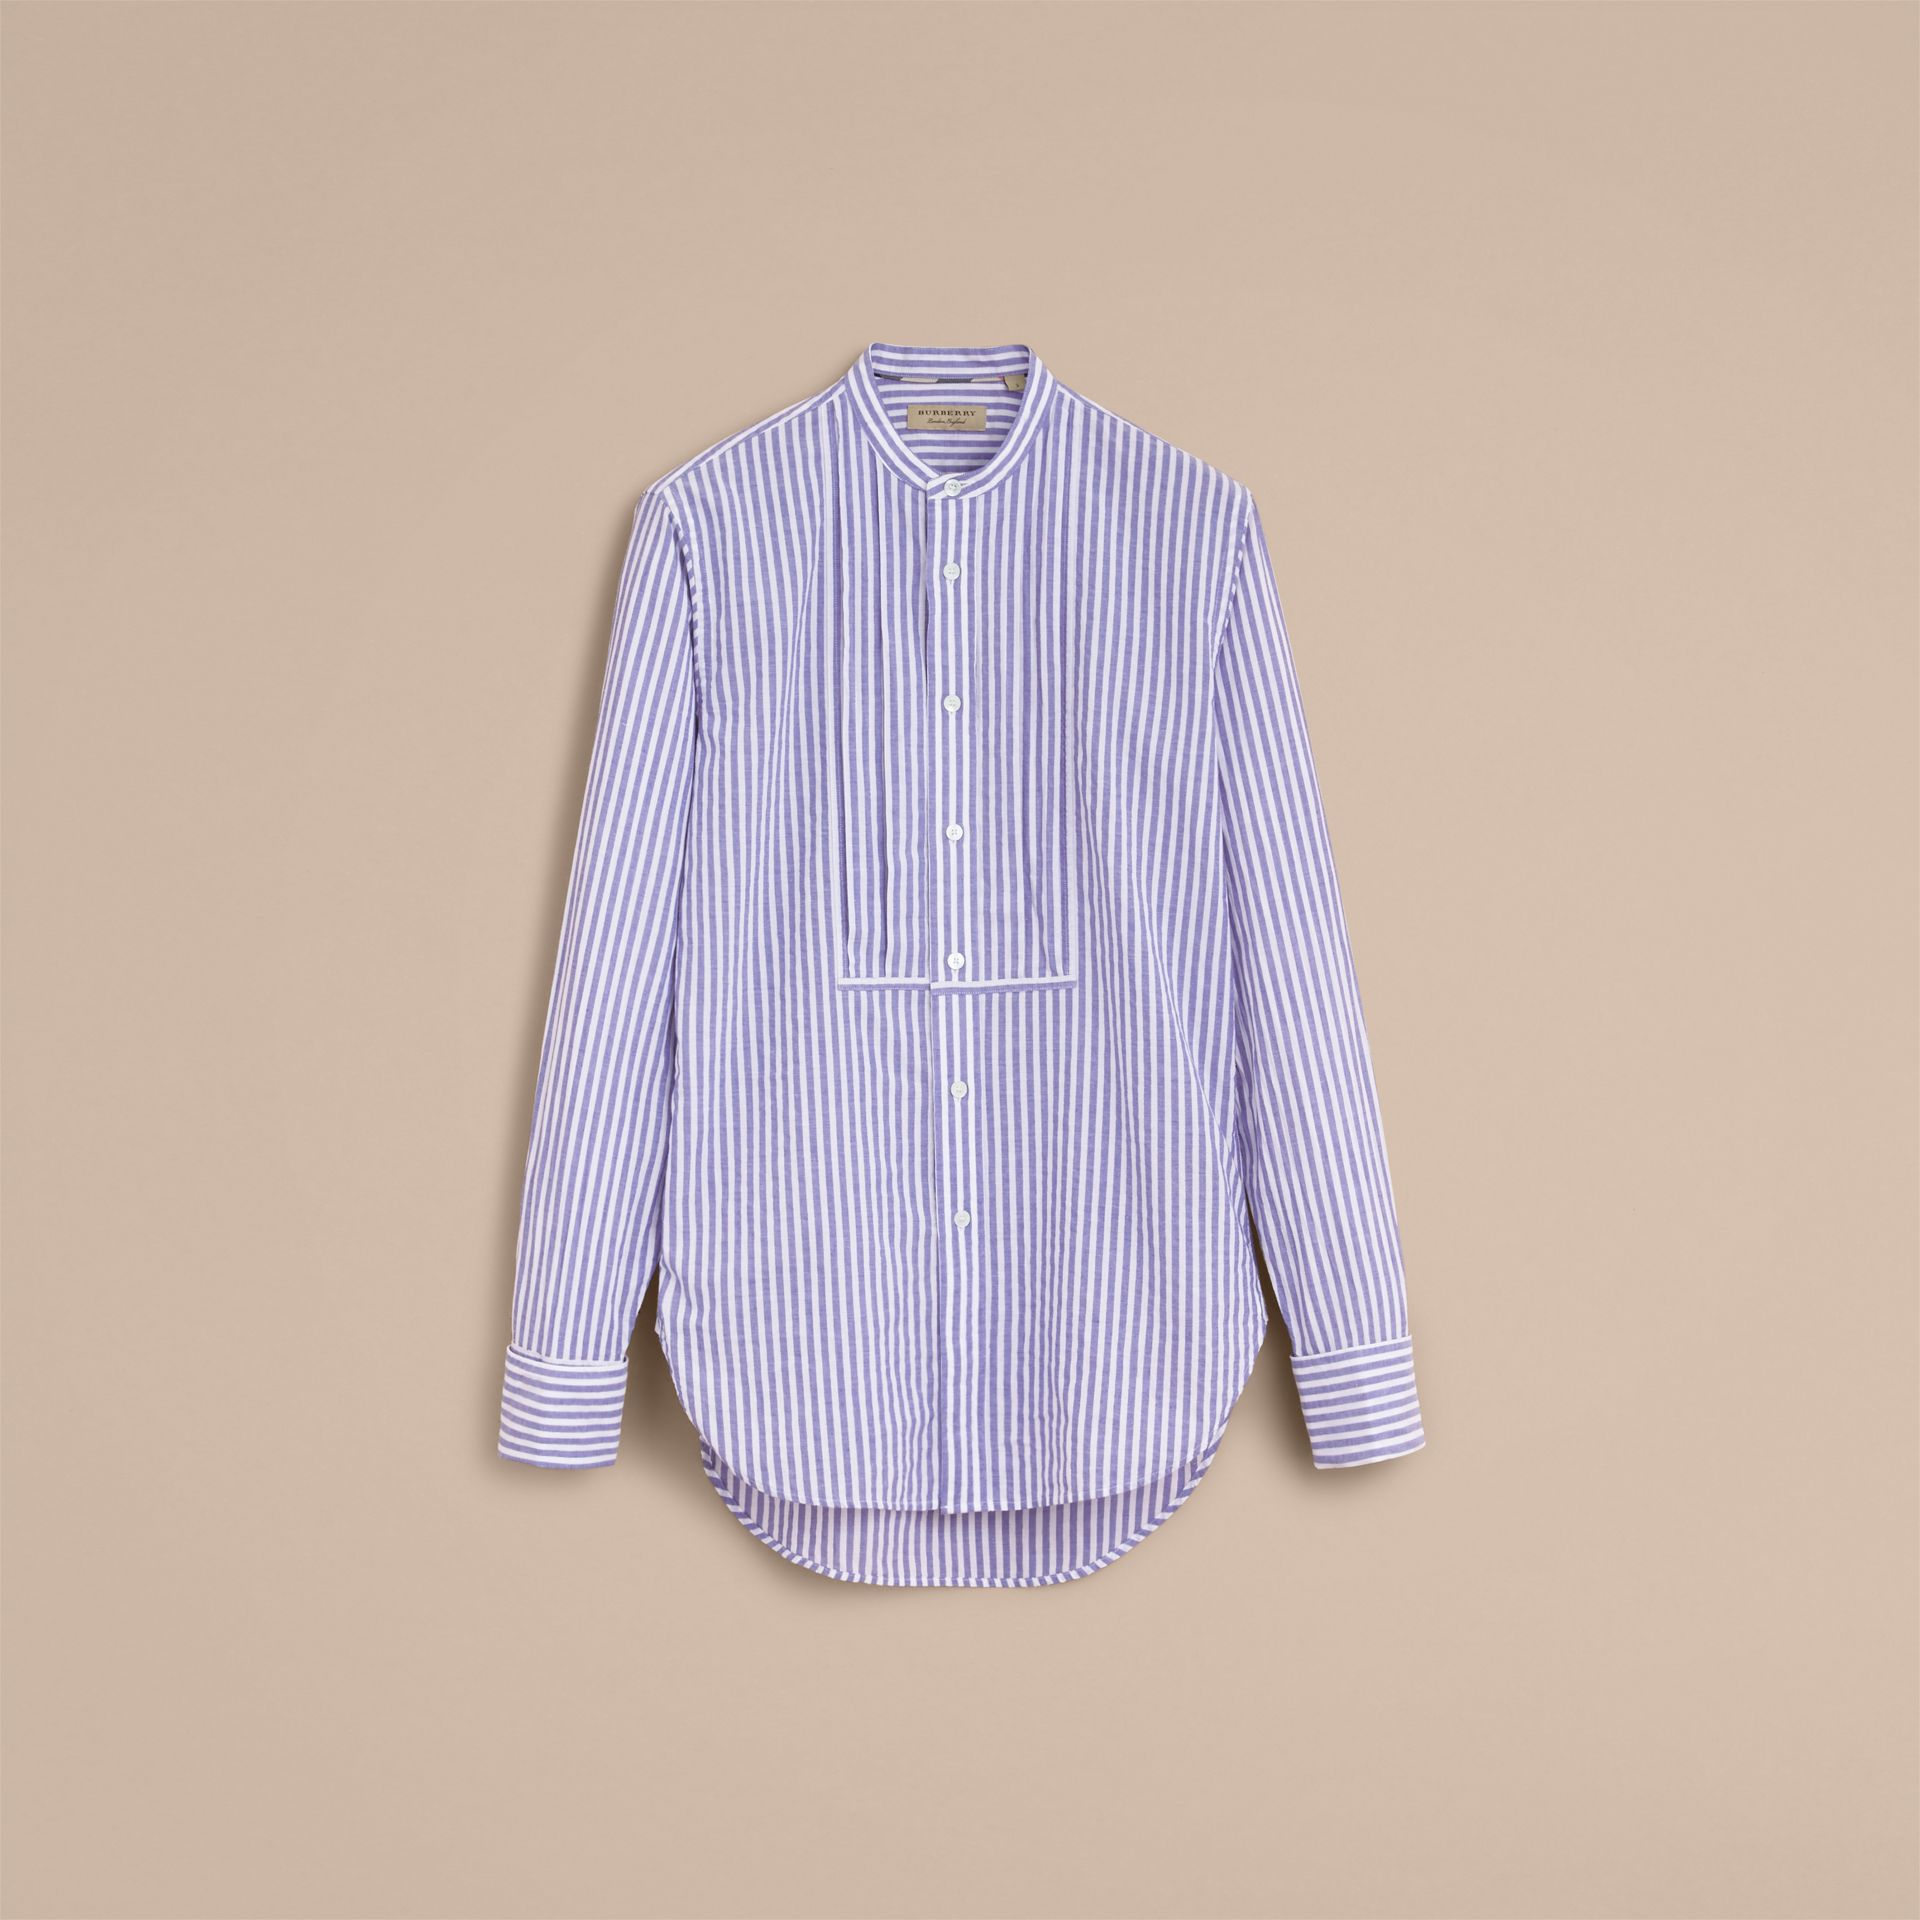 Unisex Grandad Collar Pleated Bib Striped Cotton Shirt in Pale Blue/white - Women | Burberry - gallery image 3